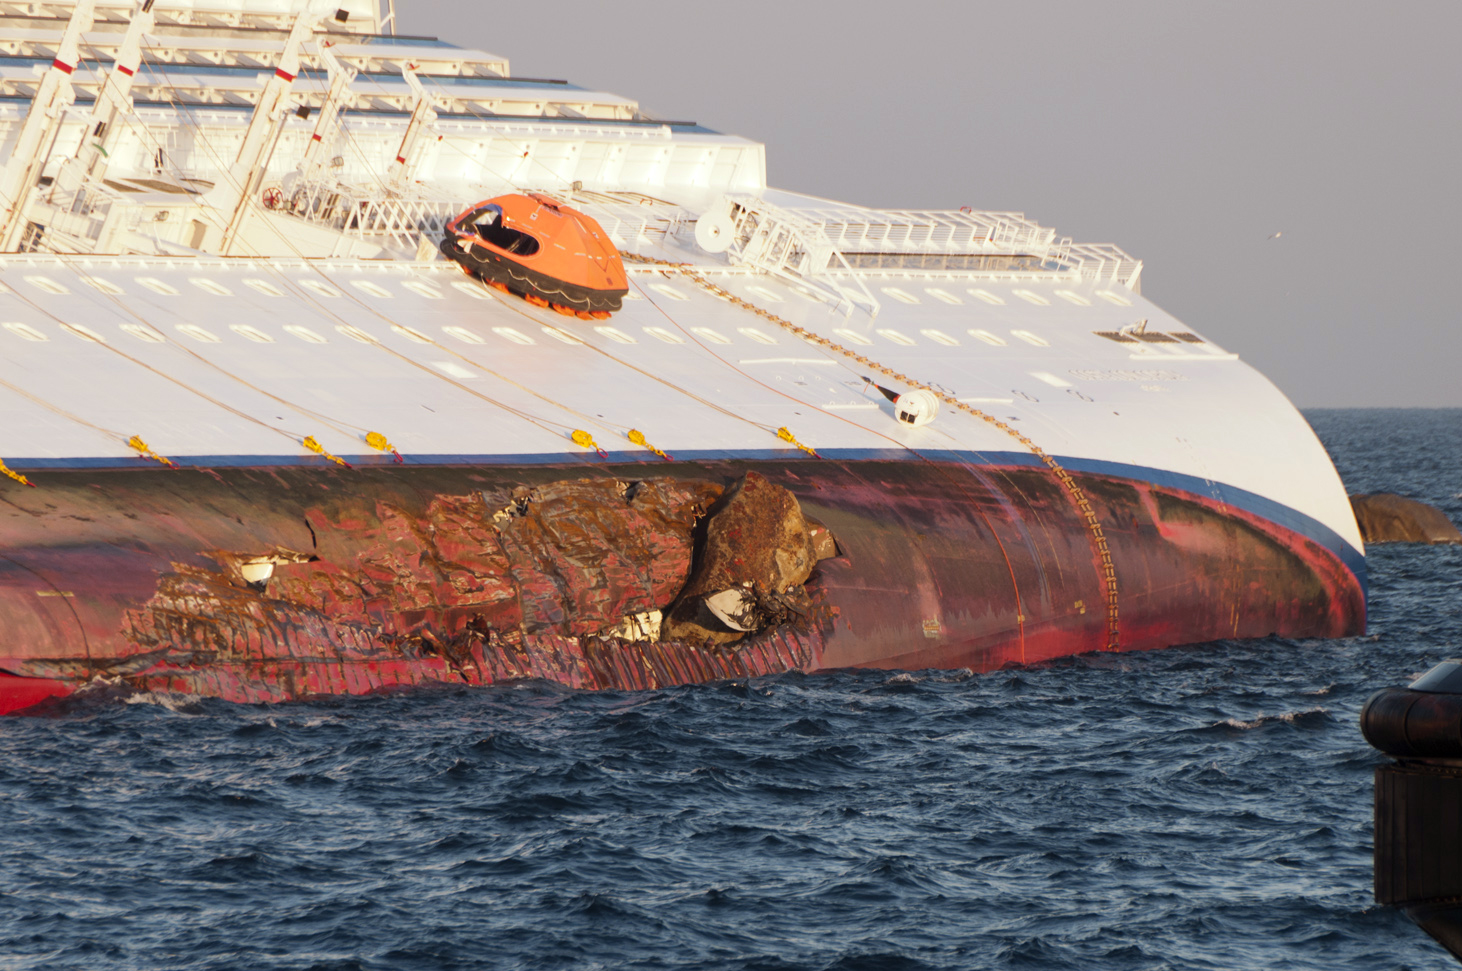 Description Collision of Costa Concordia DSC4191.jpg